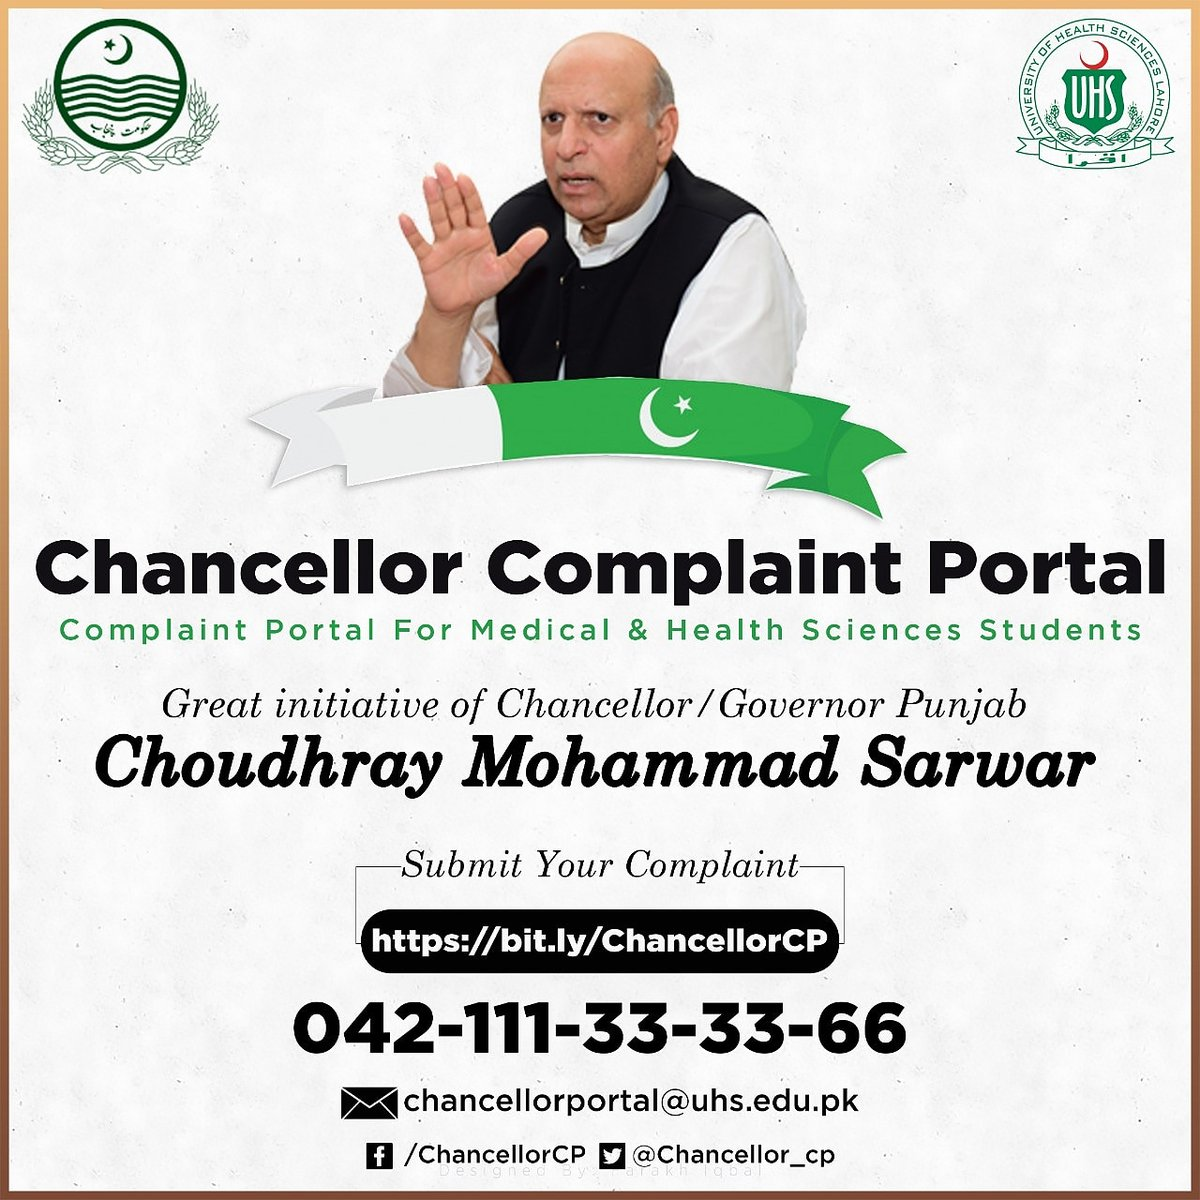 Great initiative of Honourable Chancellor/Governor Punjab Choudhray Mohammad Sarwar. Chancellor Complaint Portal Submit your complaints: 111-33-33-66 bit.ly/ChancellorCP facebook.com/ChancellorCP twitter.com/chancellor_cp chancellorportal@uhs.edu.pk